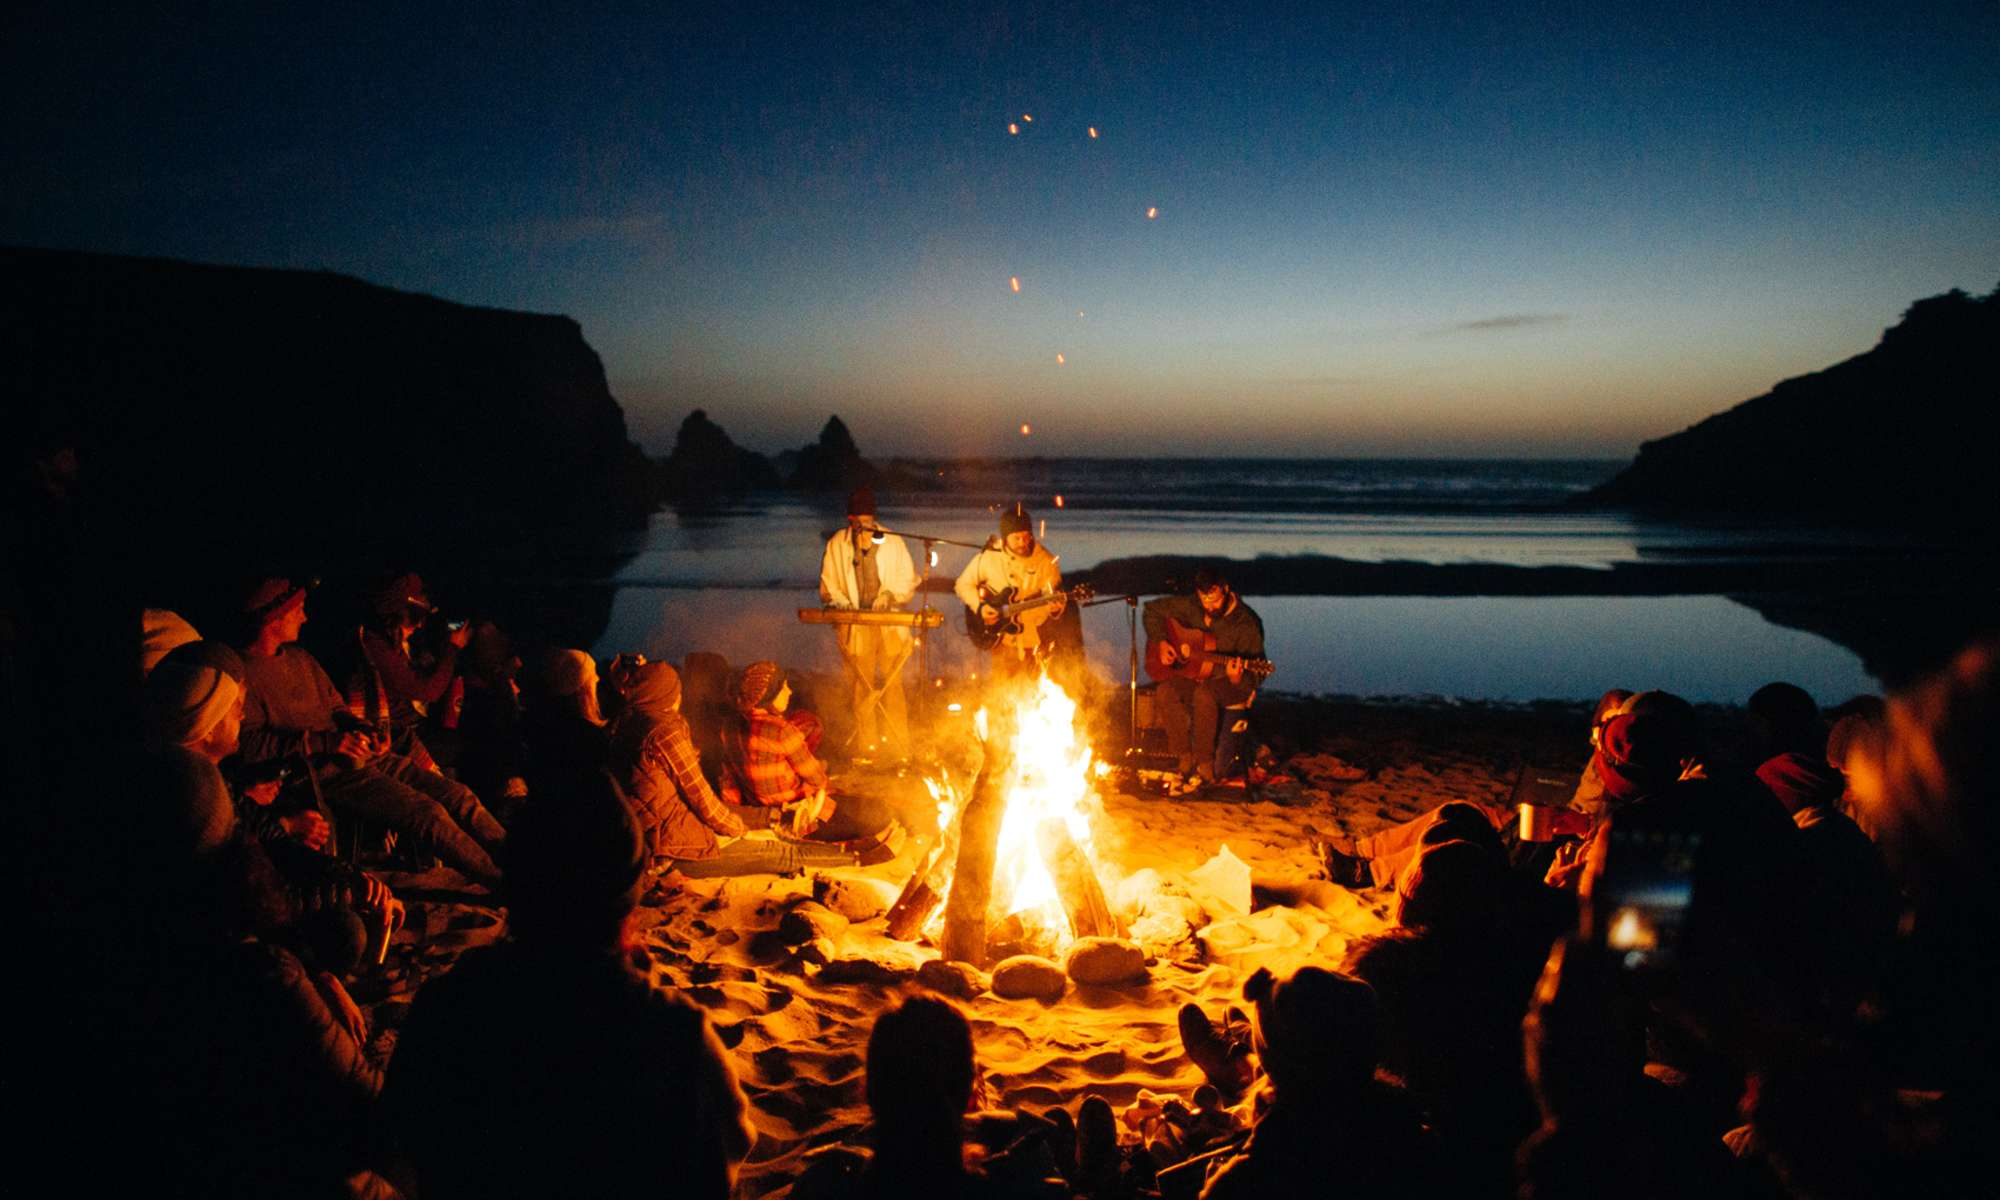 Hipcampout Summer Series: Arts and Craftsmanship on the Coast